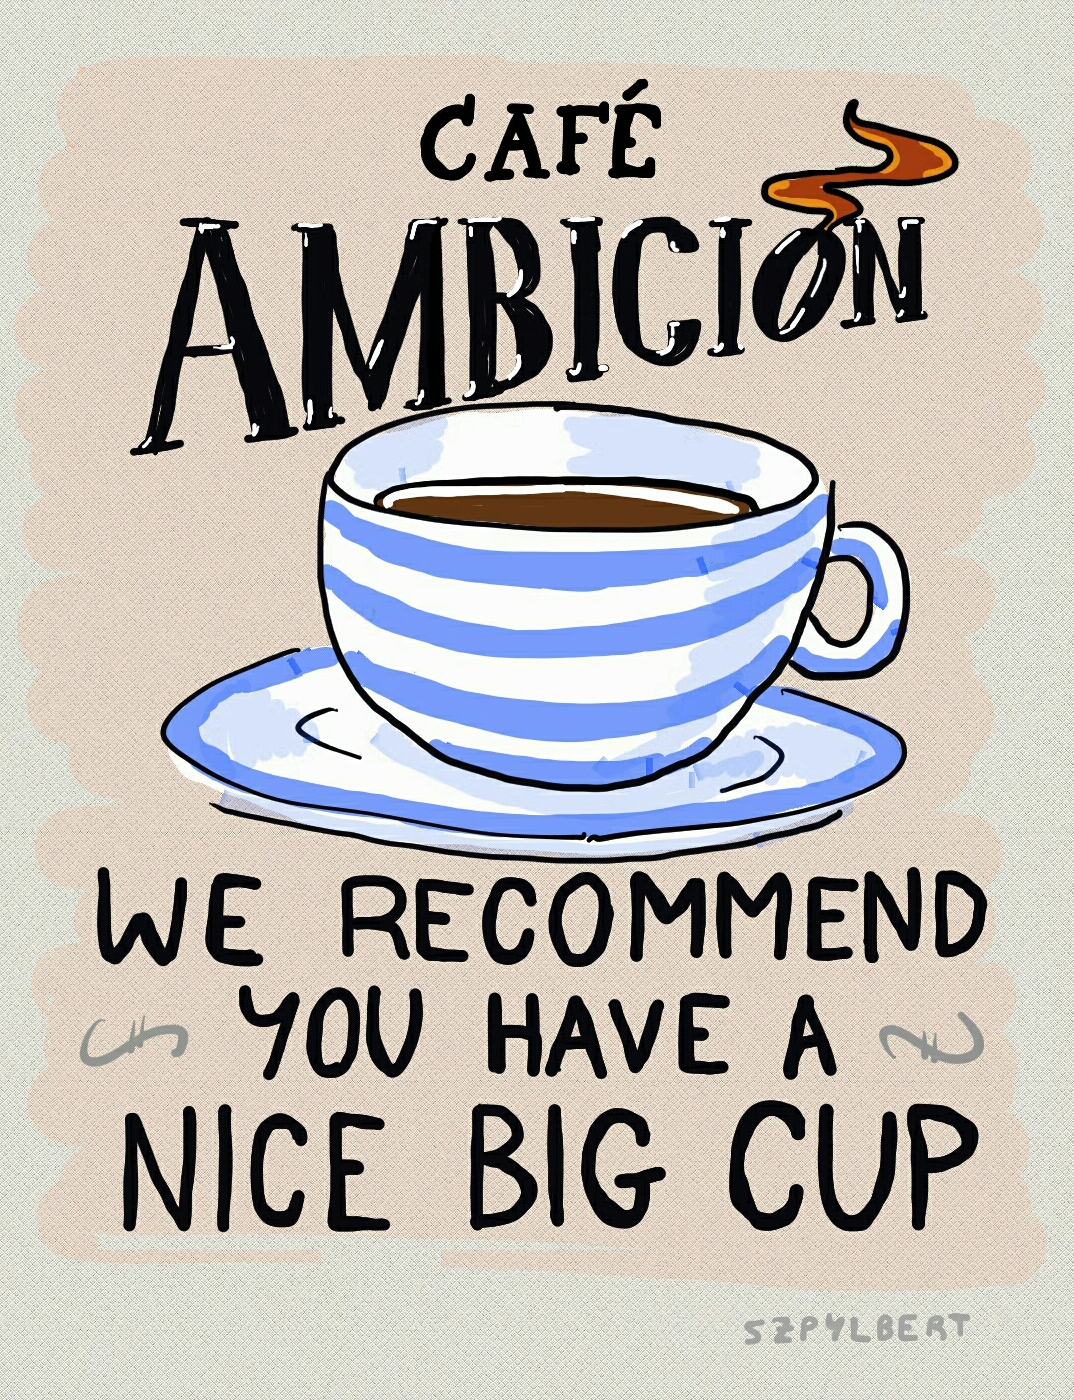 Szpylbert cartoon about coffee and ambition